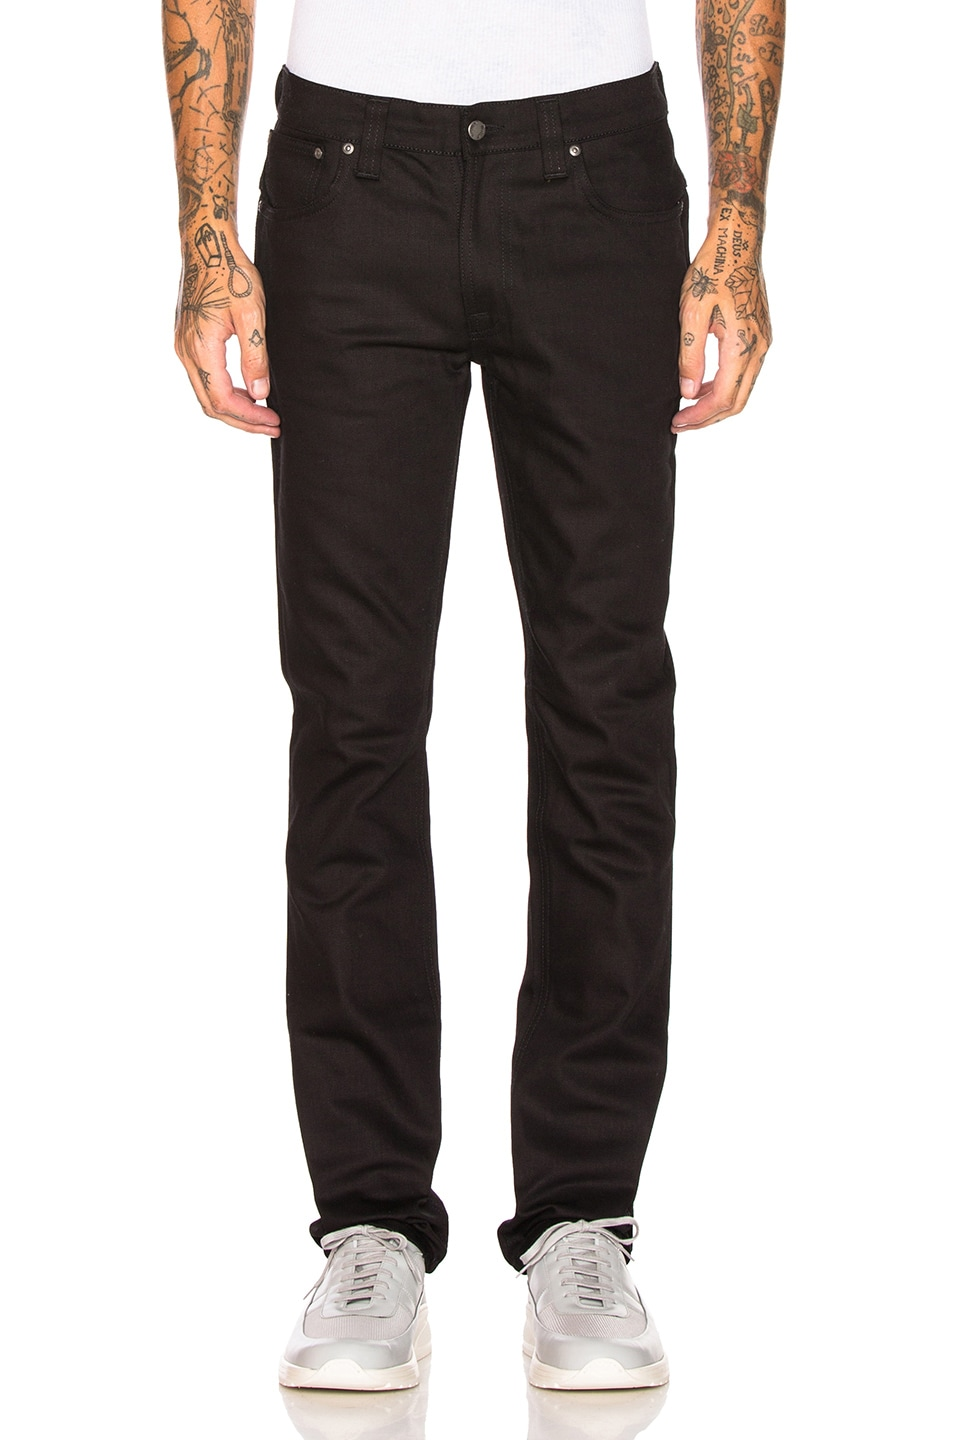 Image 1 of Nudie Jeans Thin Finn in Org. Dry Cold Black